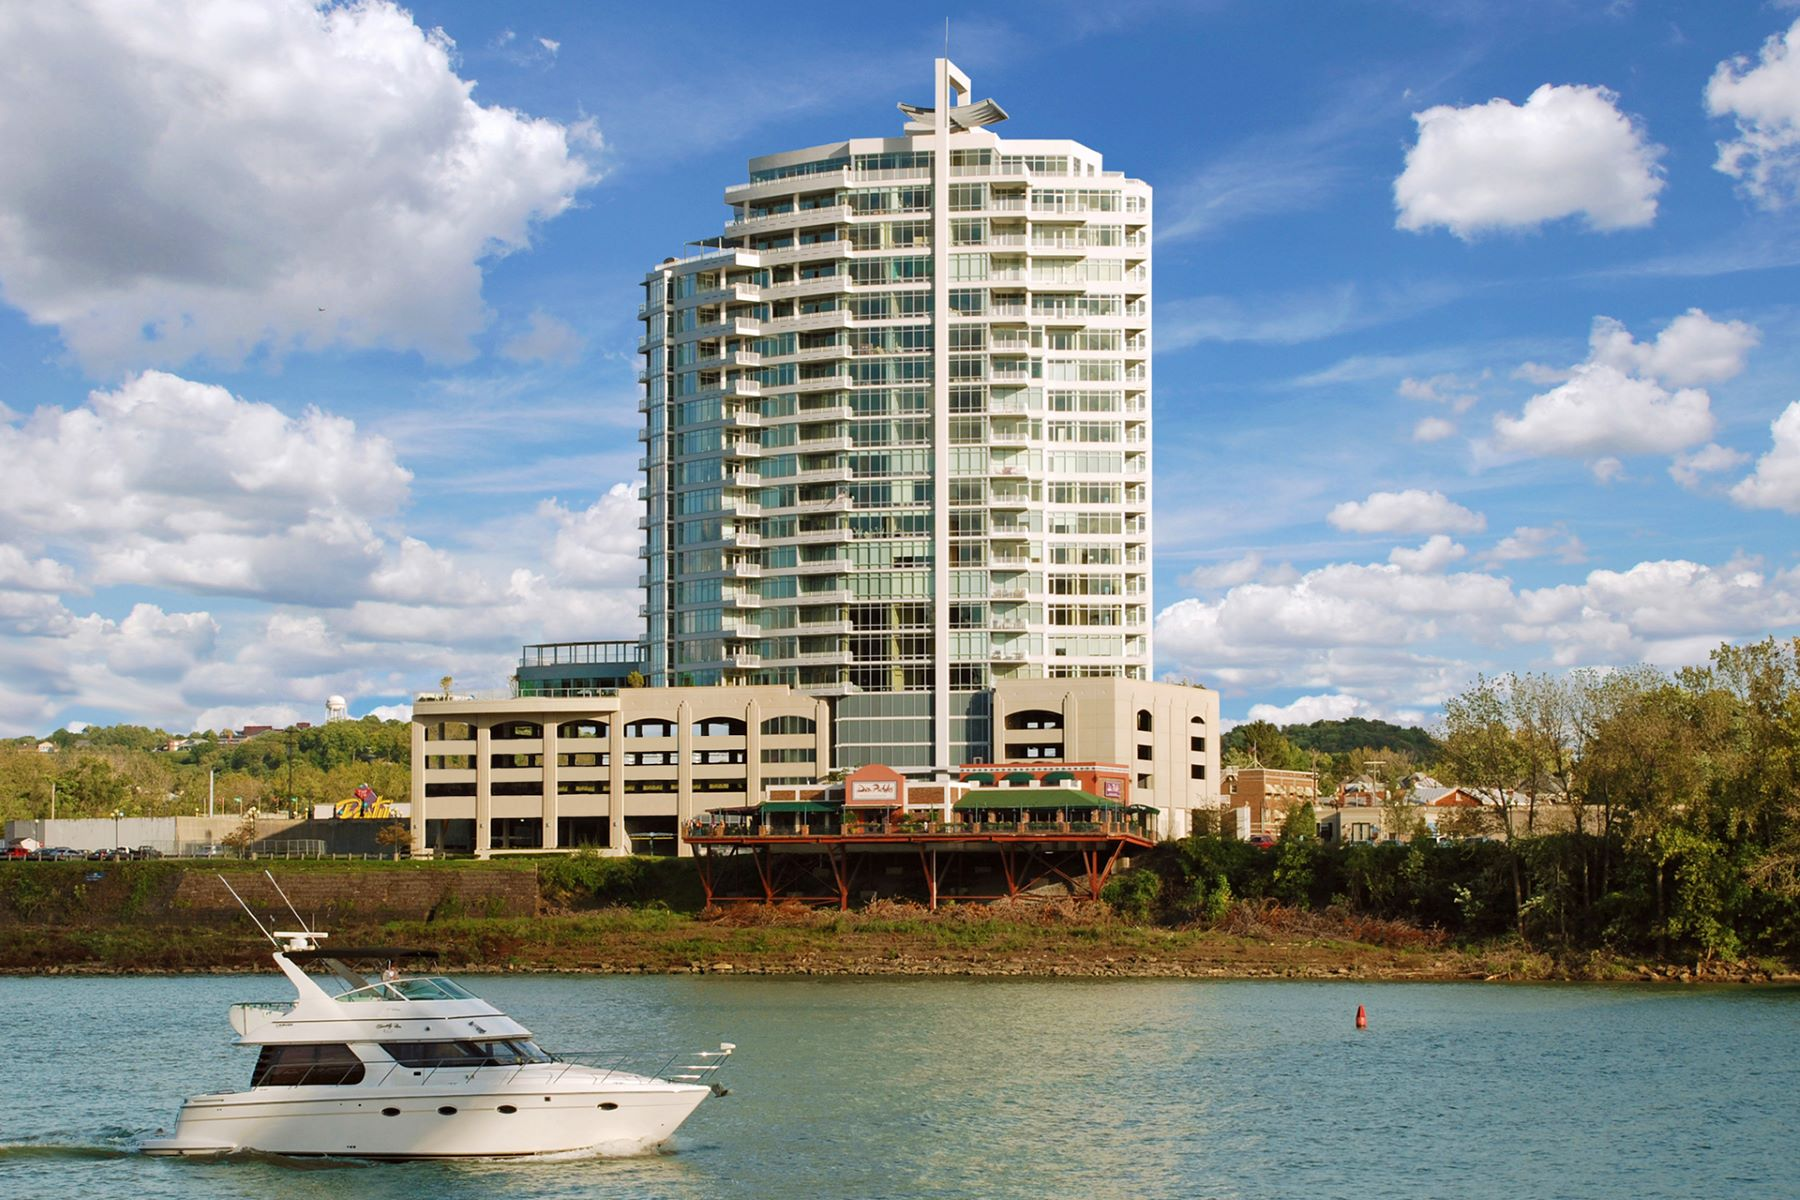 Condominium for Sale at Luxury Waterfront Living 400 Riverboat Row 704 Newport, Kentucky 41071 United States